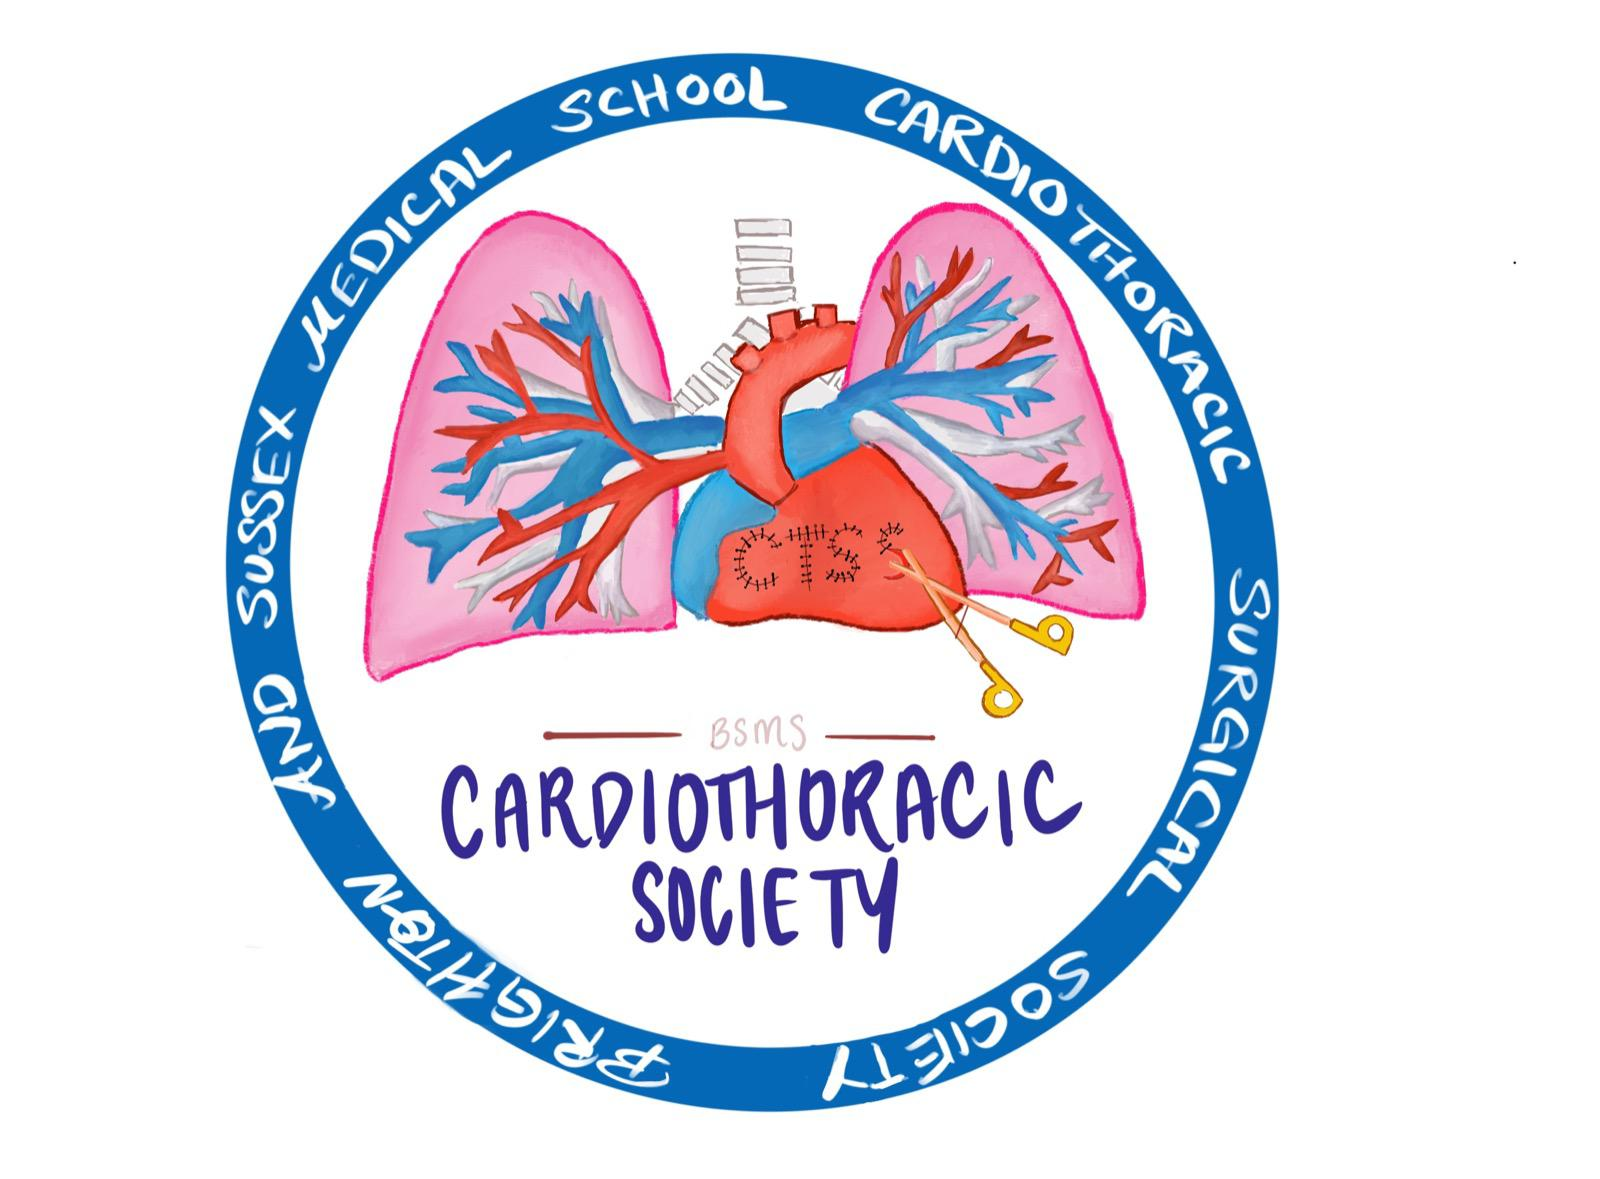 BSMS Cardiothoracic Surgical Society (BSMS CTSS) image